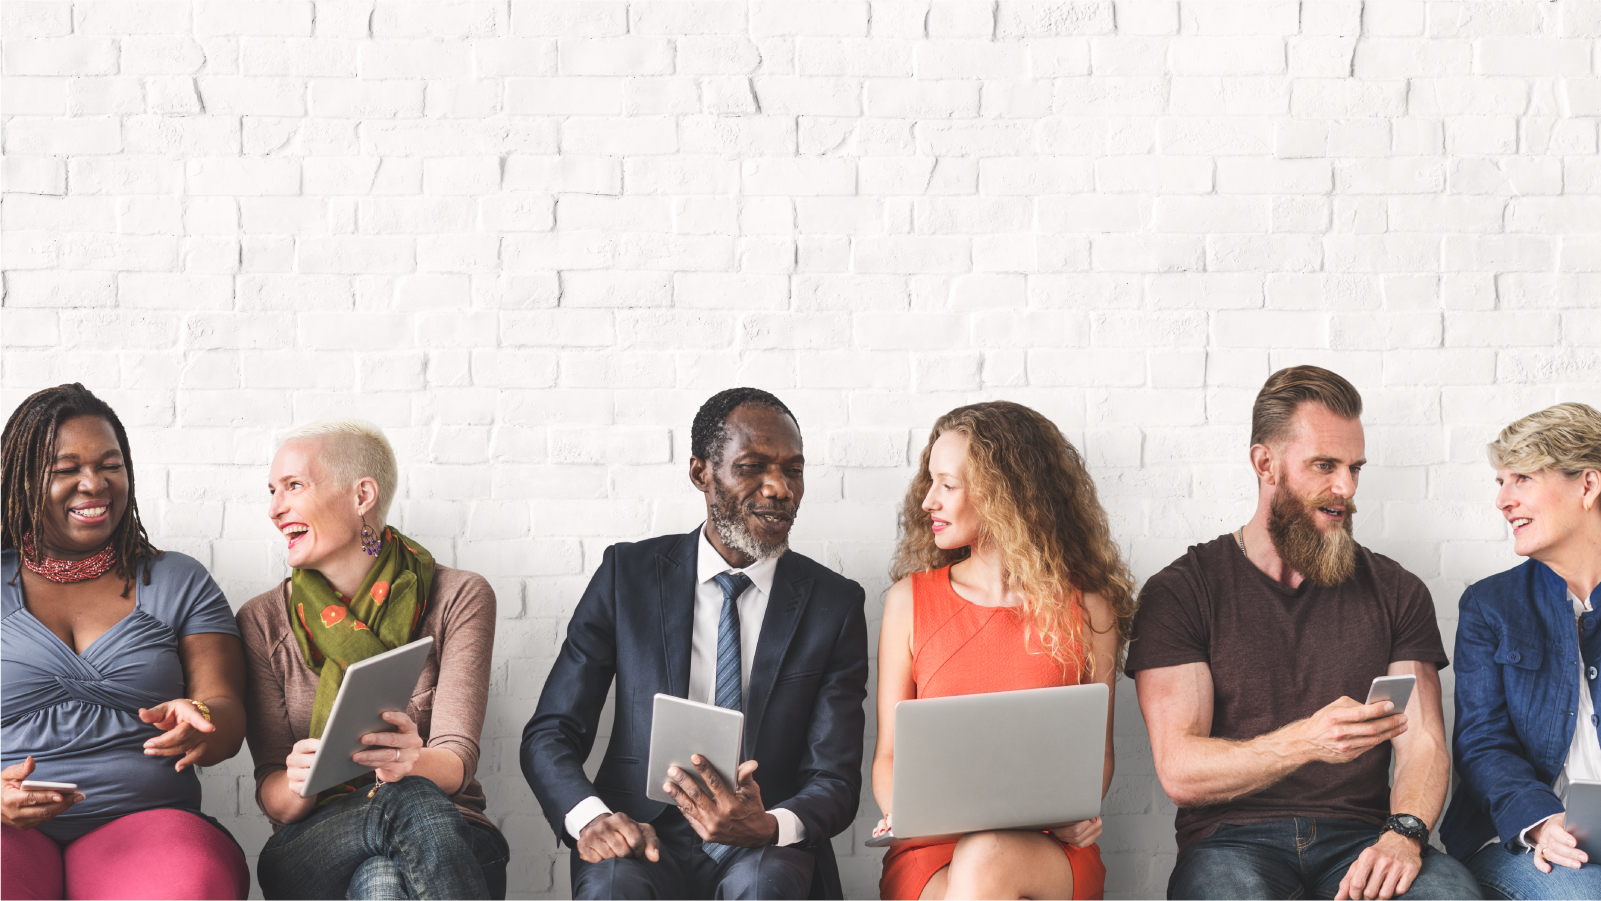 Building Diversity and Inclusion in the Workplace